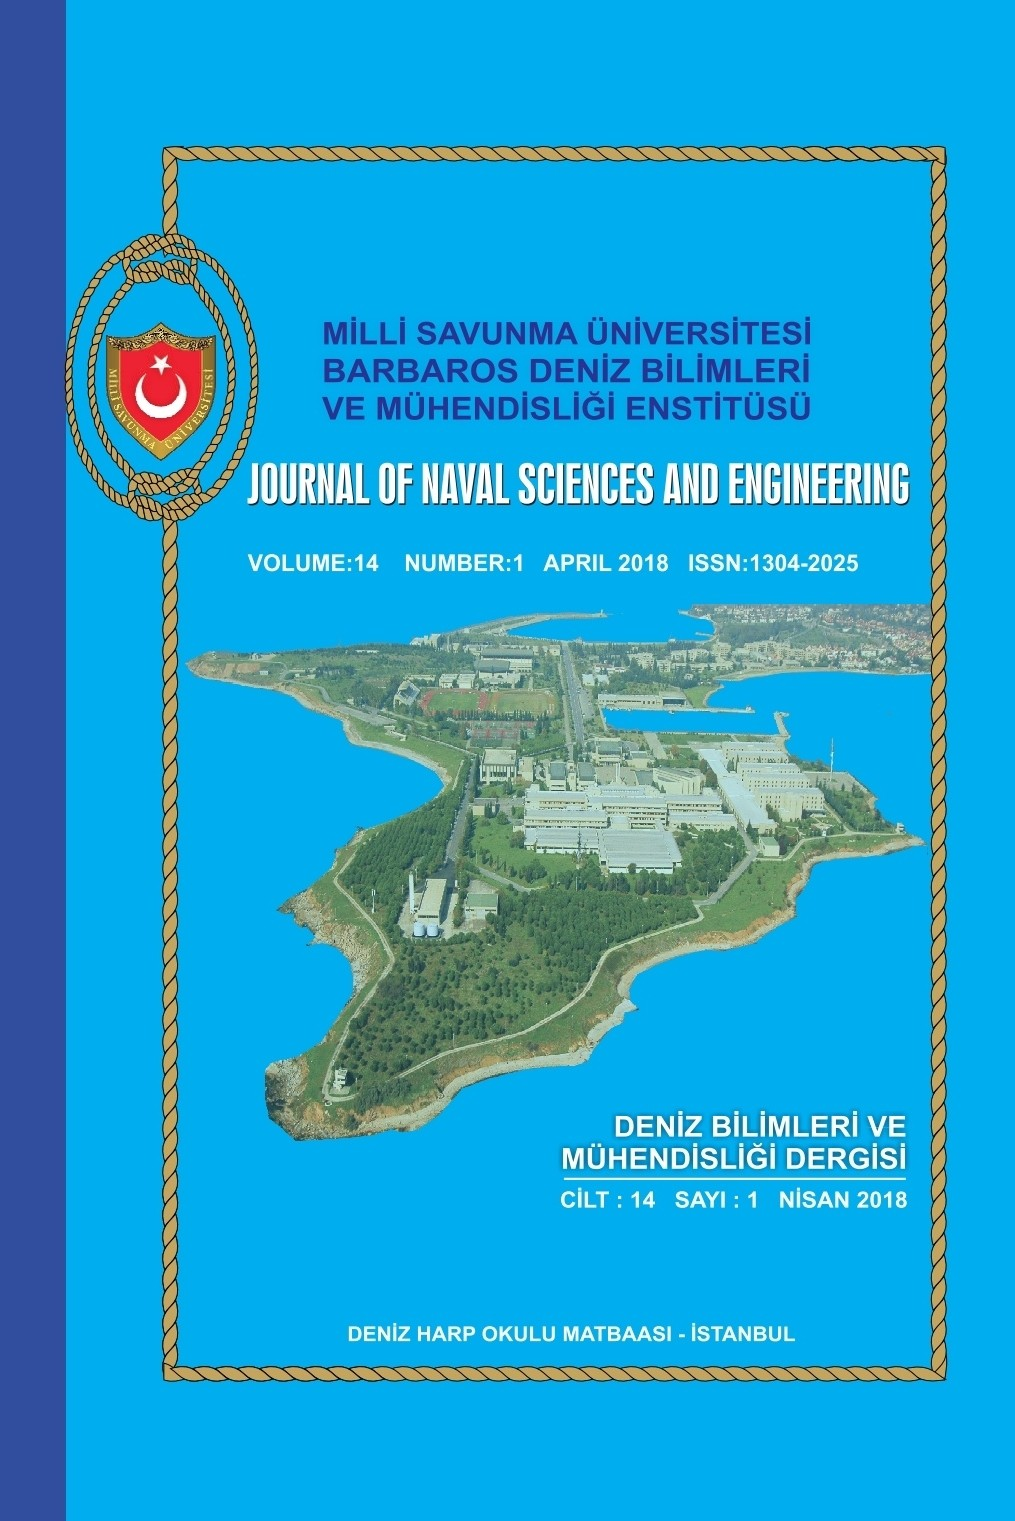 Journal of Naval Sciences and Engineering